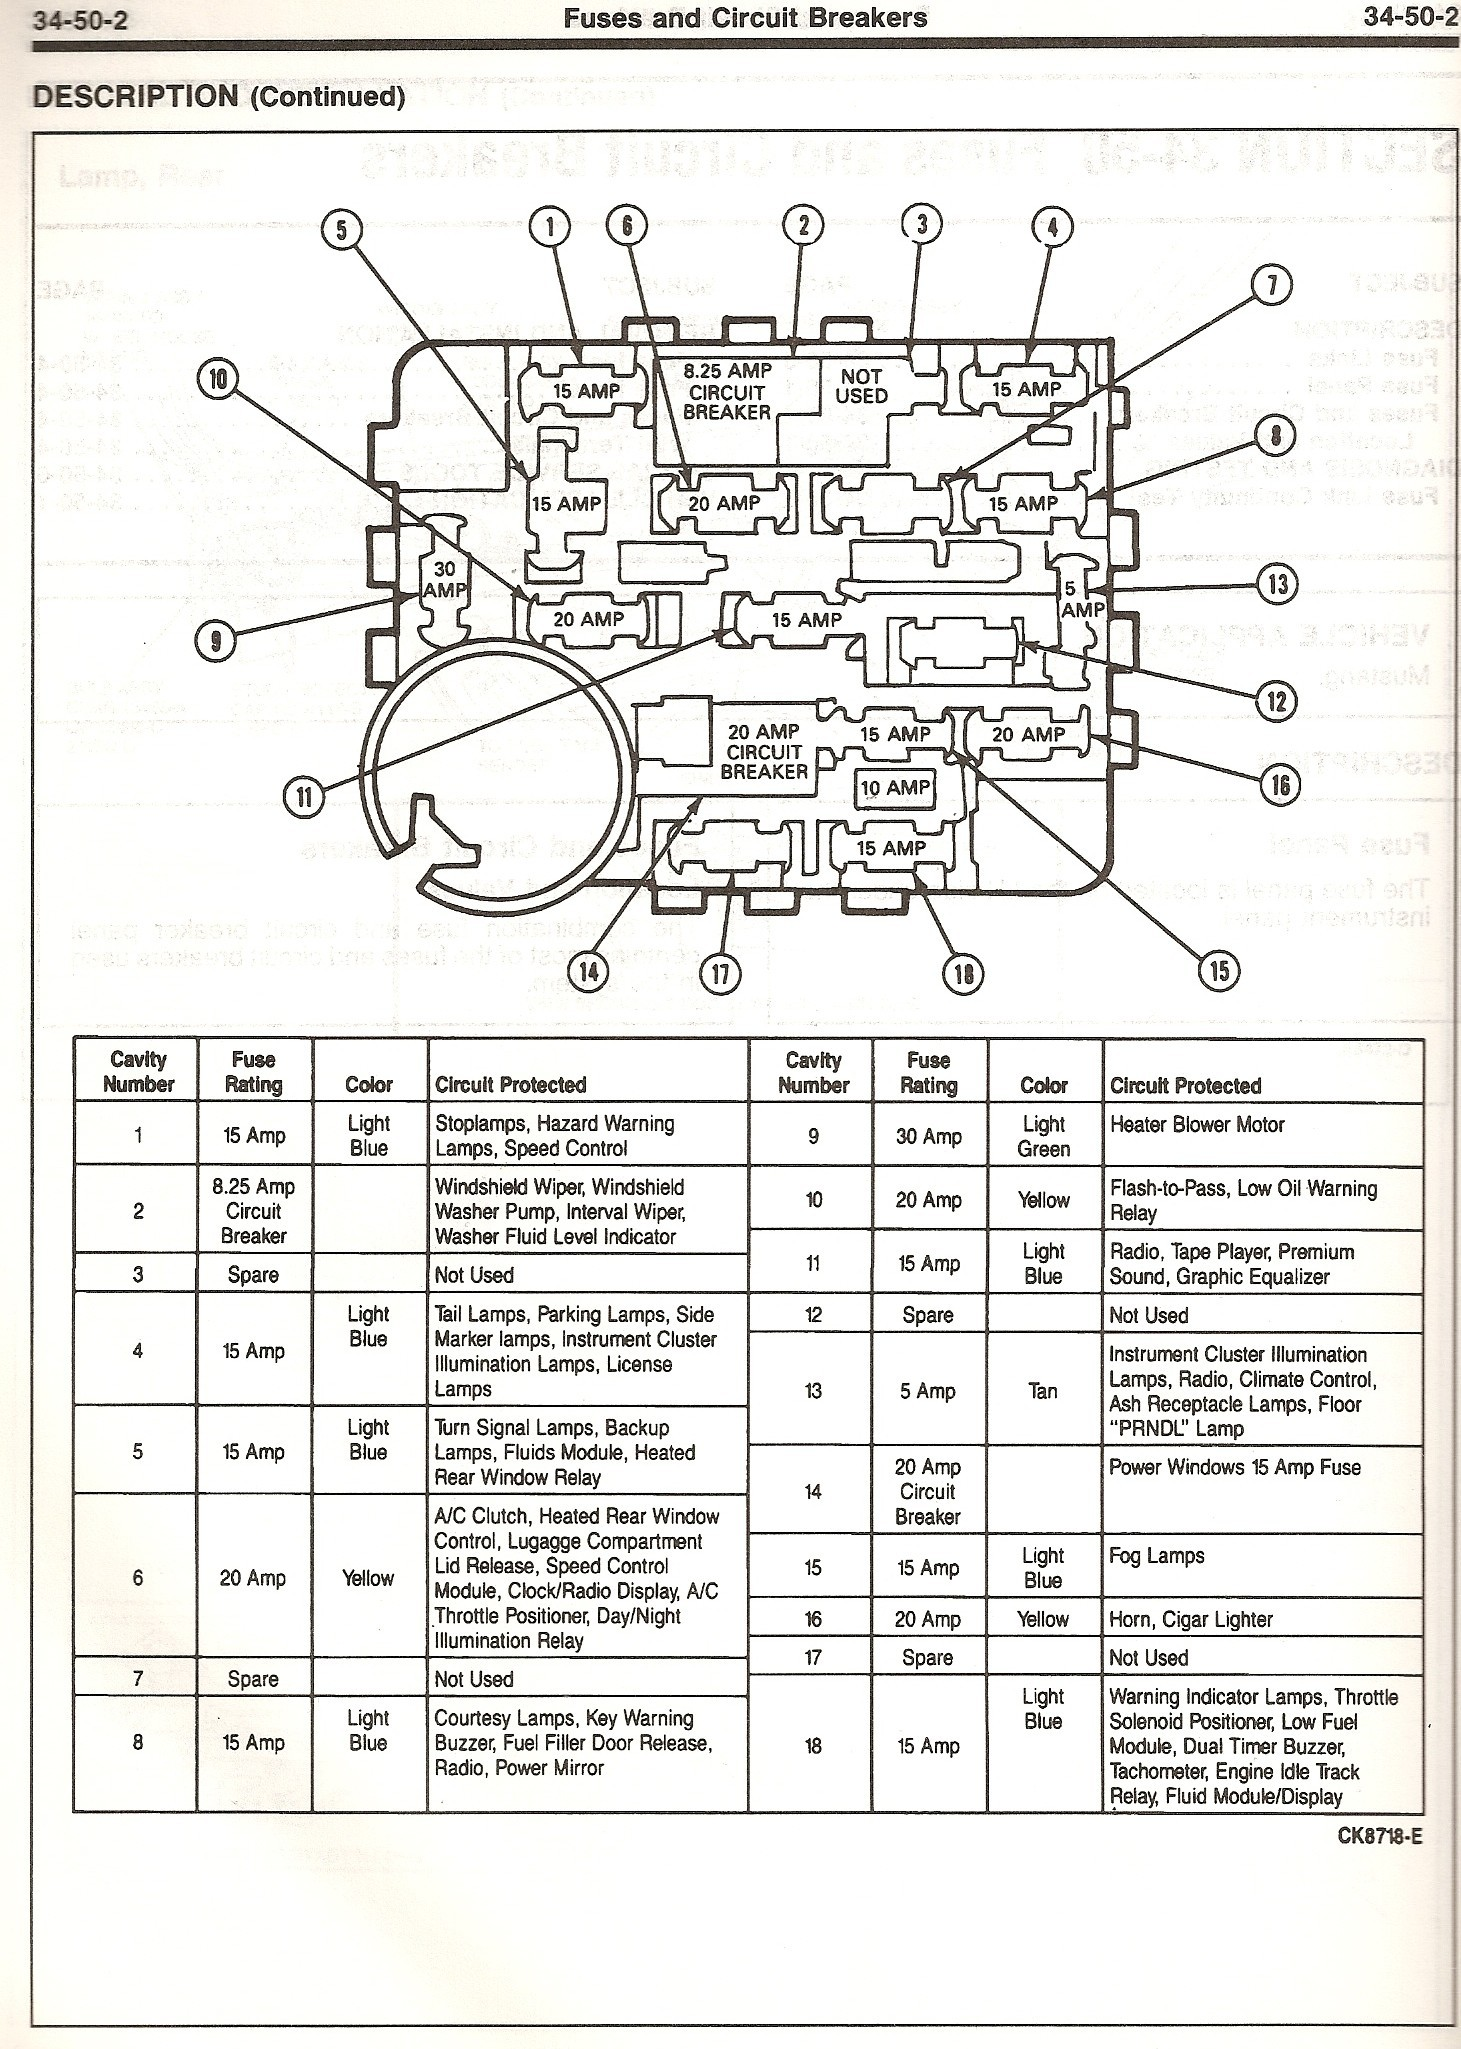 hight resolution of 1991 ford explorer fuse panel diagram wiring diagrams favorites 1991 aerostar fuse panel diagram wiring diagram